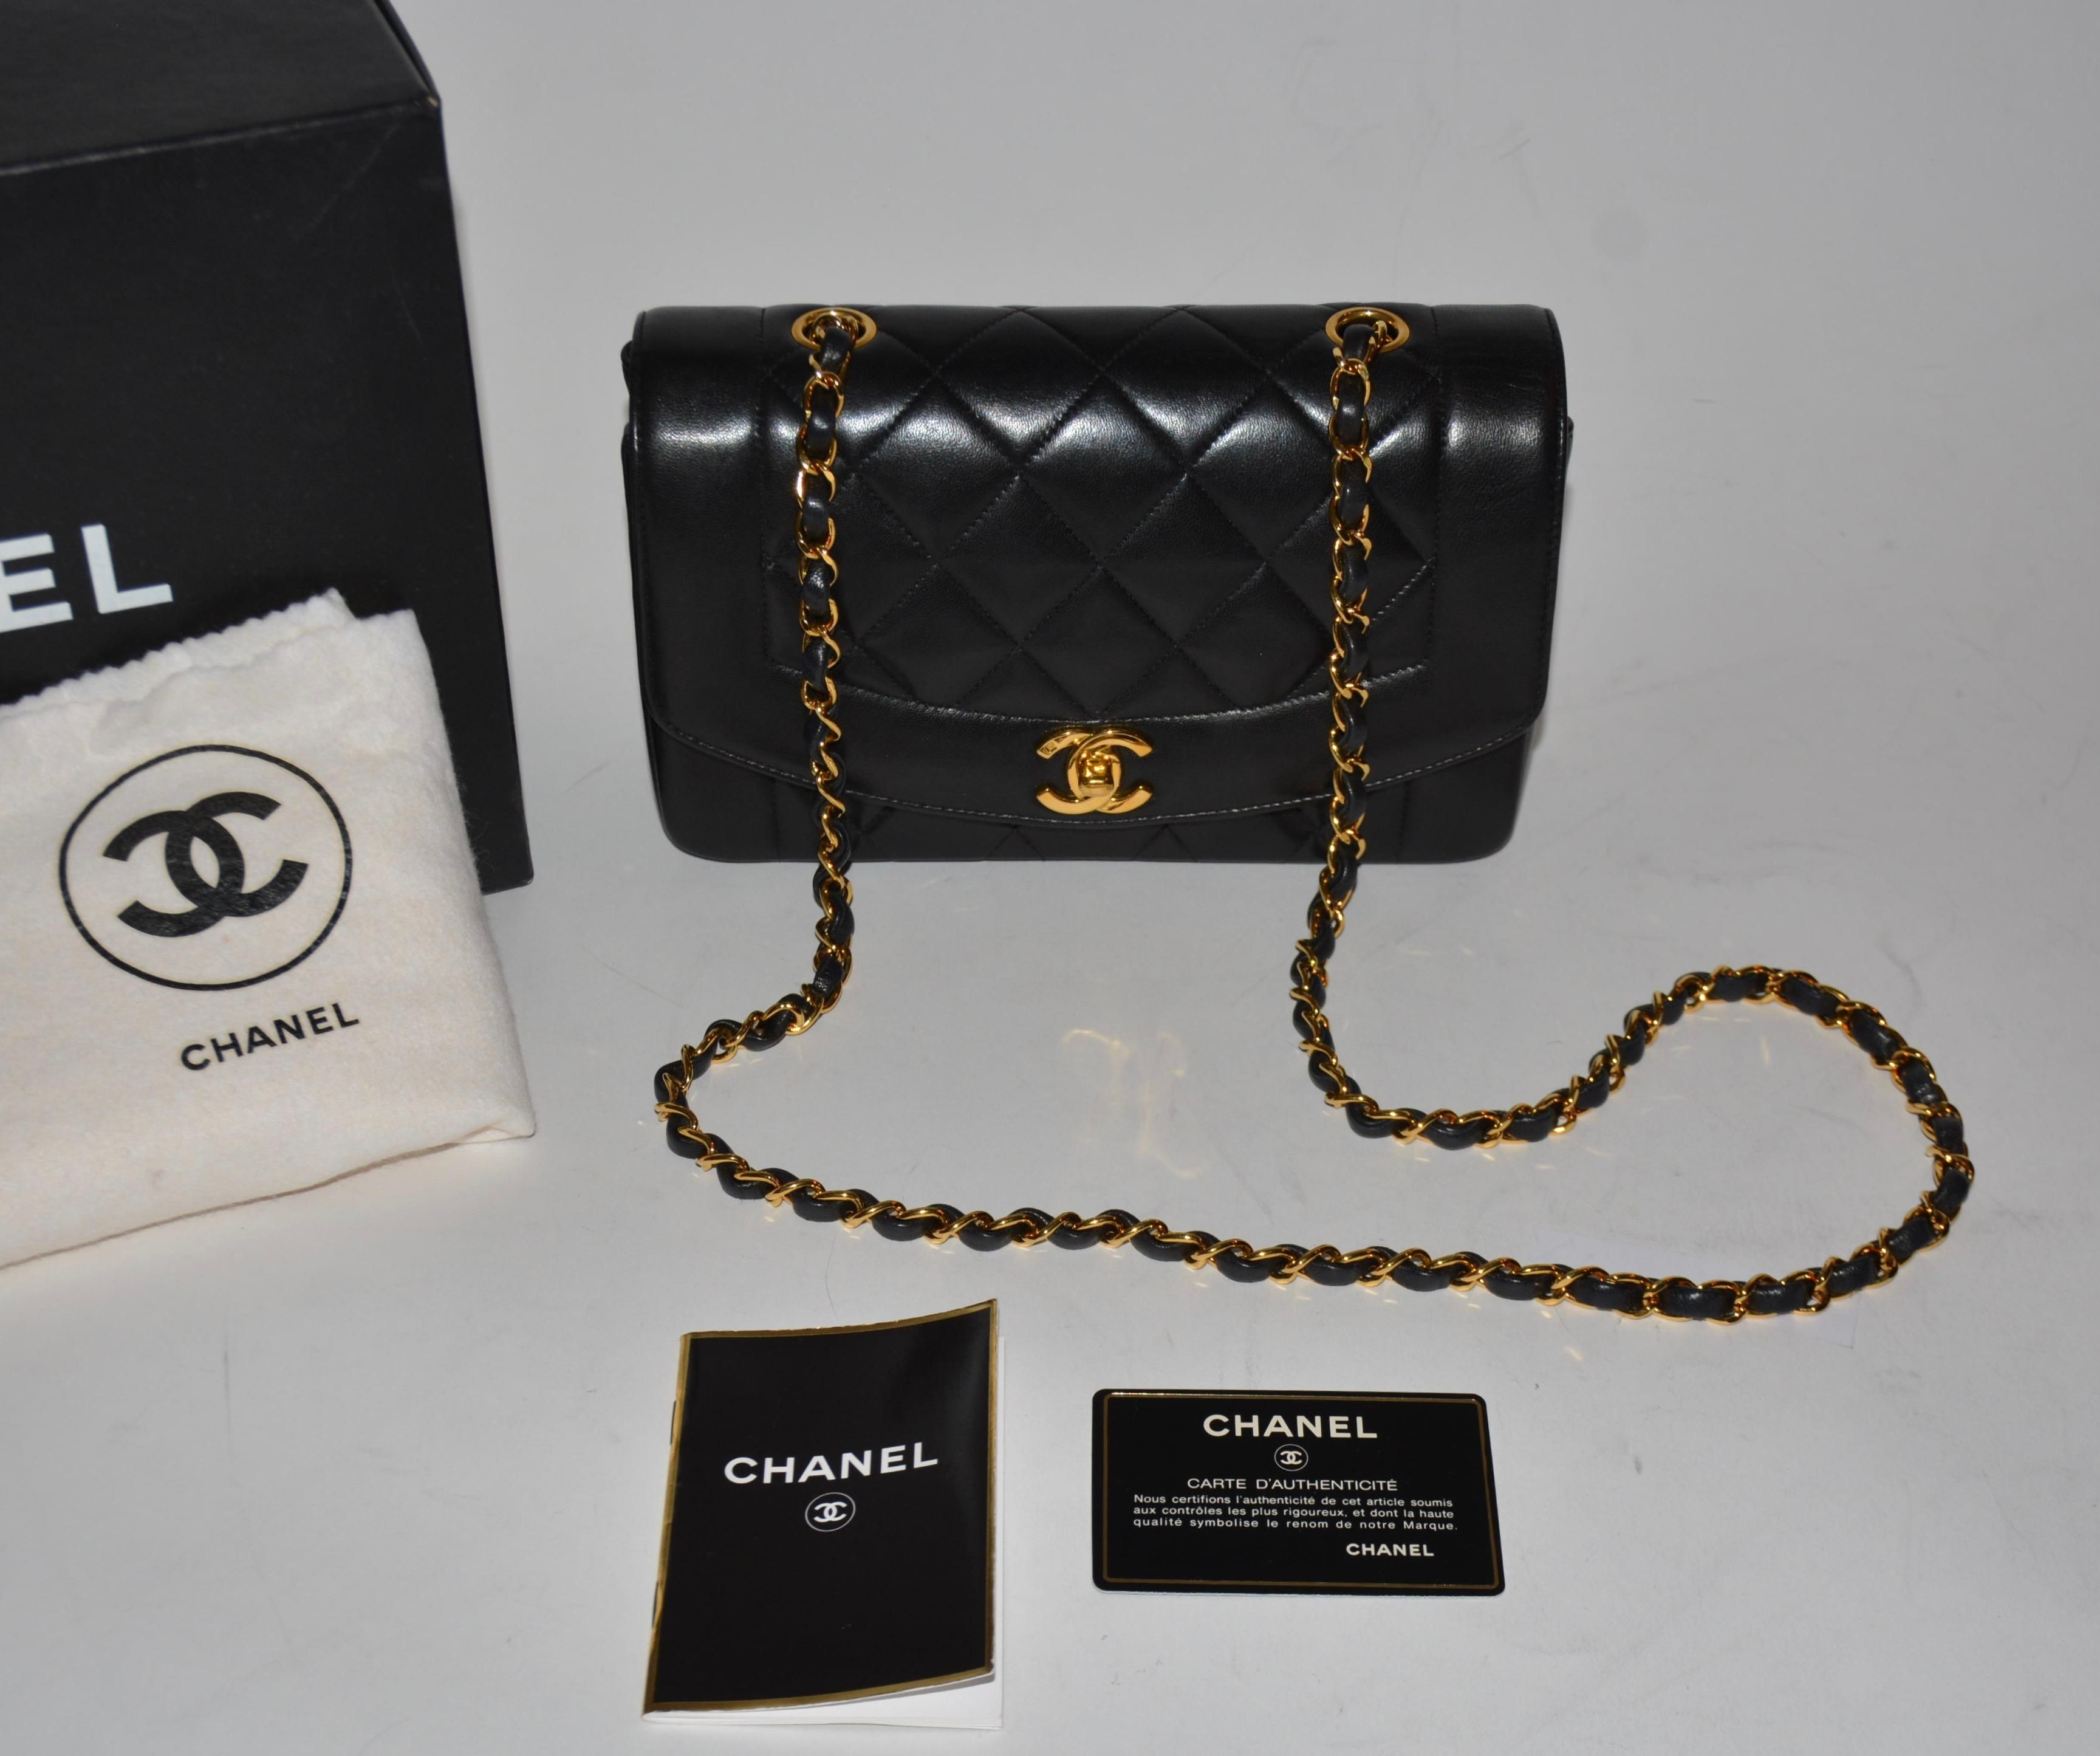 974754394cfb3f Chanel Classic Princess Diana Single Flap Quilted Lambskin Cc 2.55 B  Shoulder Bag. Get one of the hottest styles of the season! The Chanel  Classic Princess ...